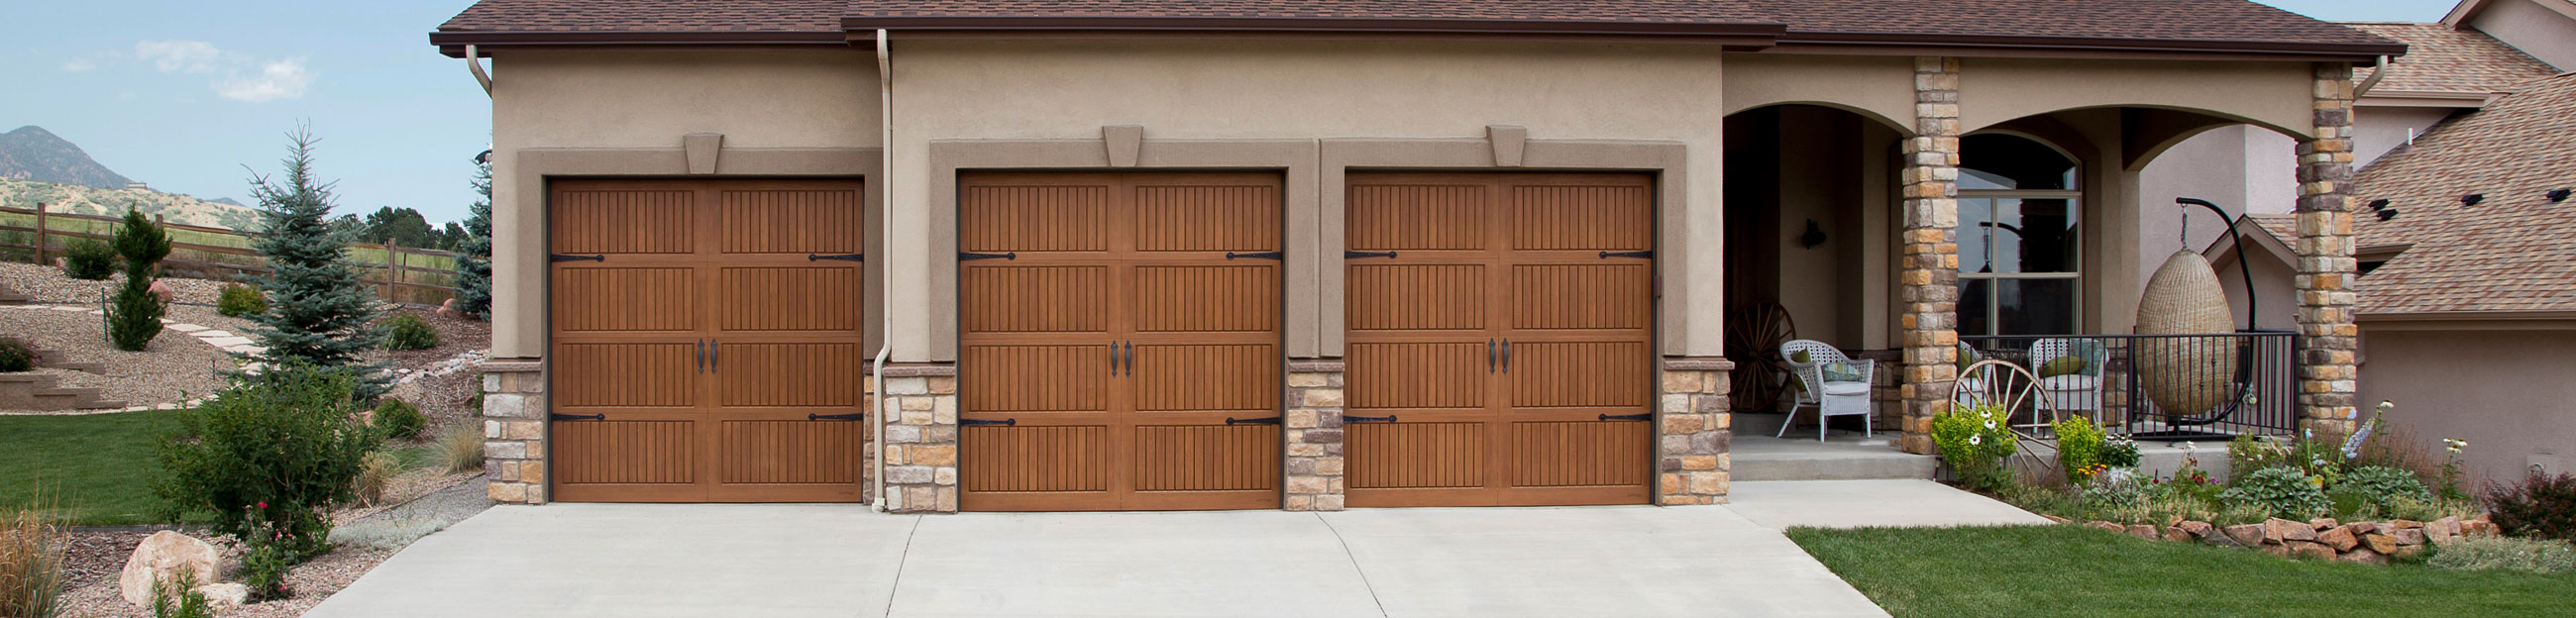 Garage Door Parts Near My Location Garage Door Repair Overhead Door Company Of Fargo